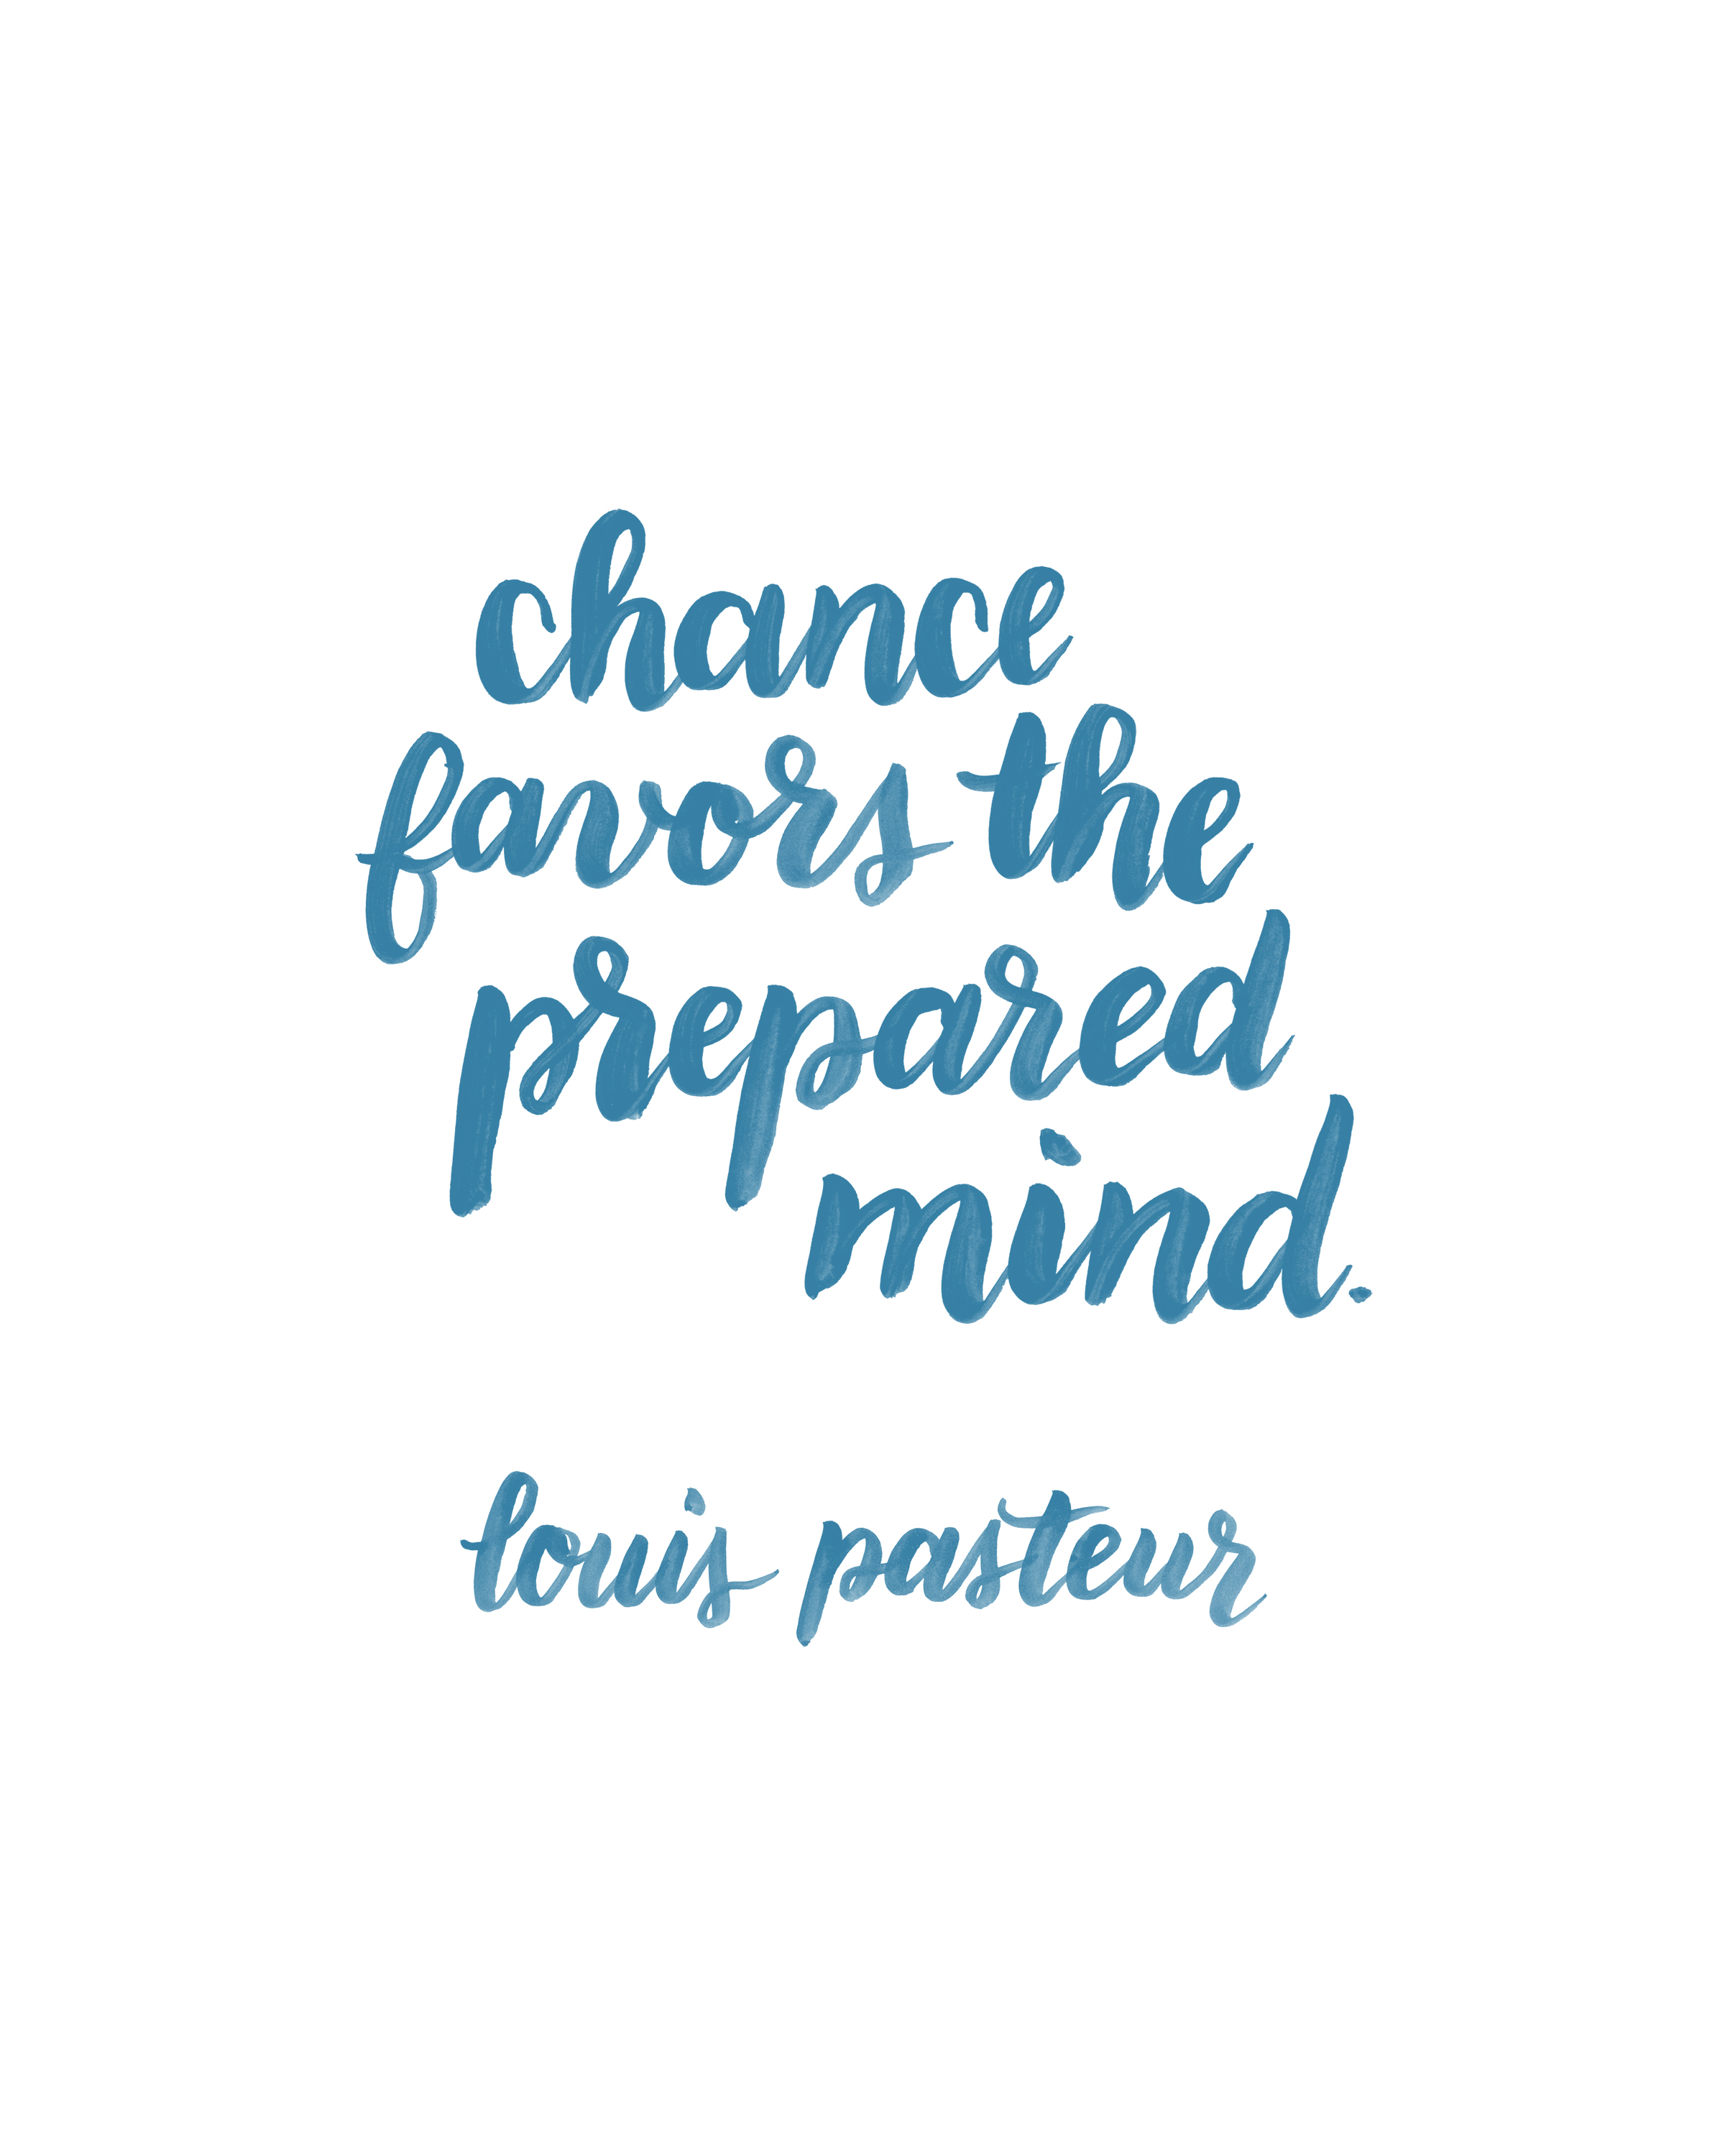 Chance Favors Prepared Mind